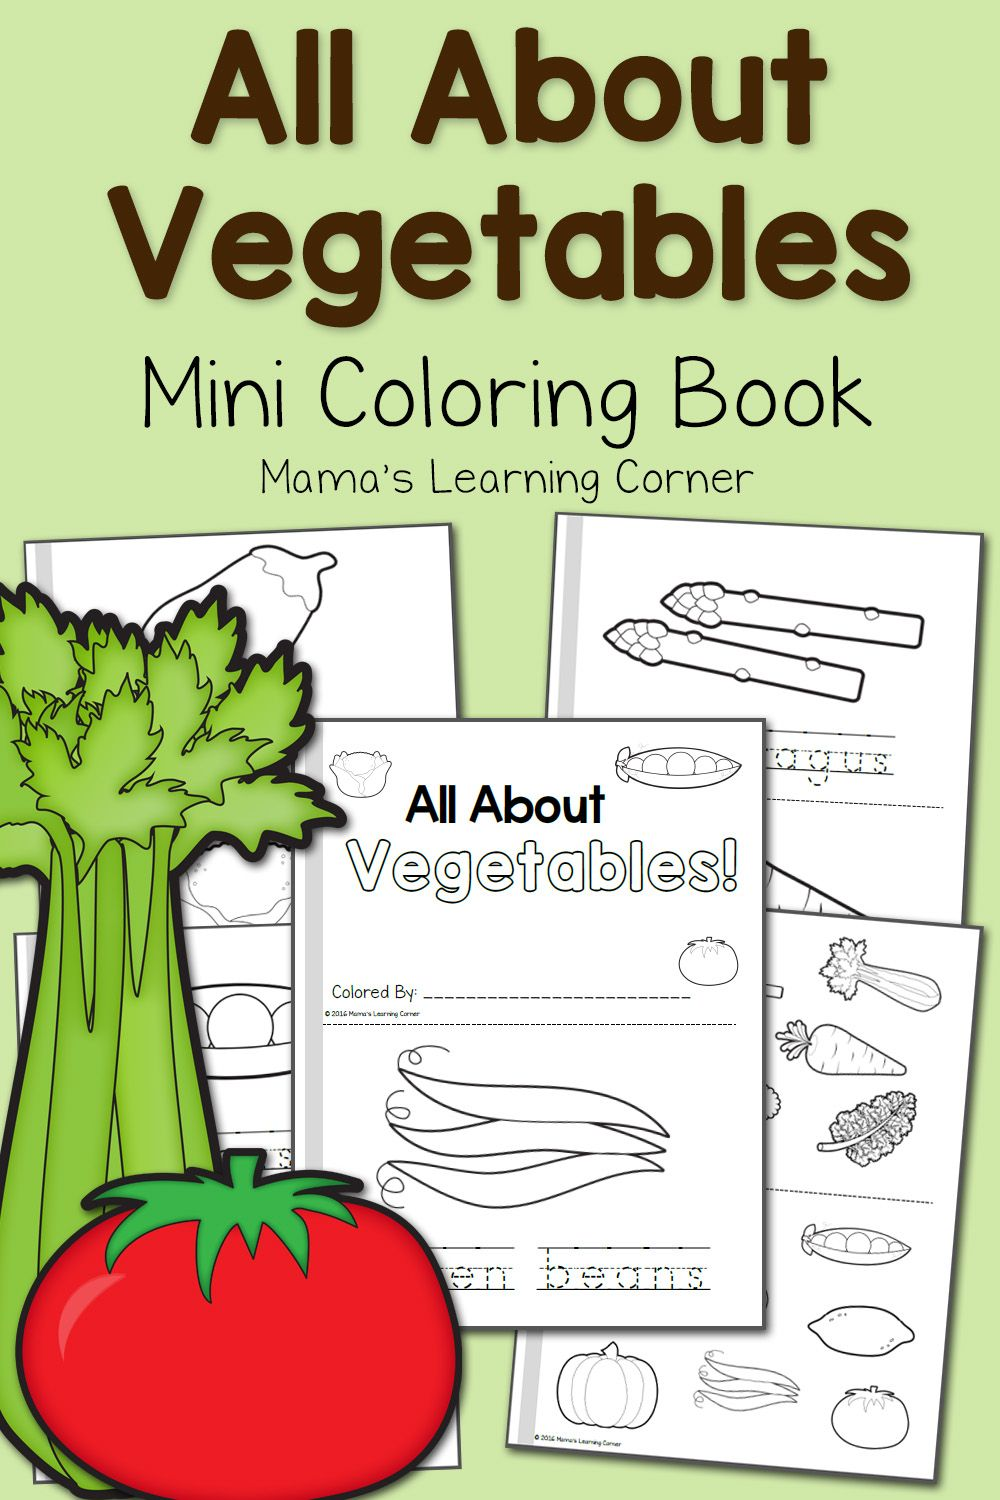 Vegetable Coloring Pages | Activities, Kindergarten and School